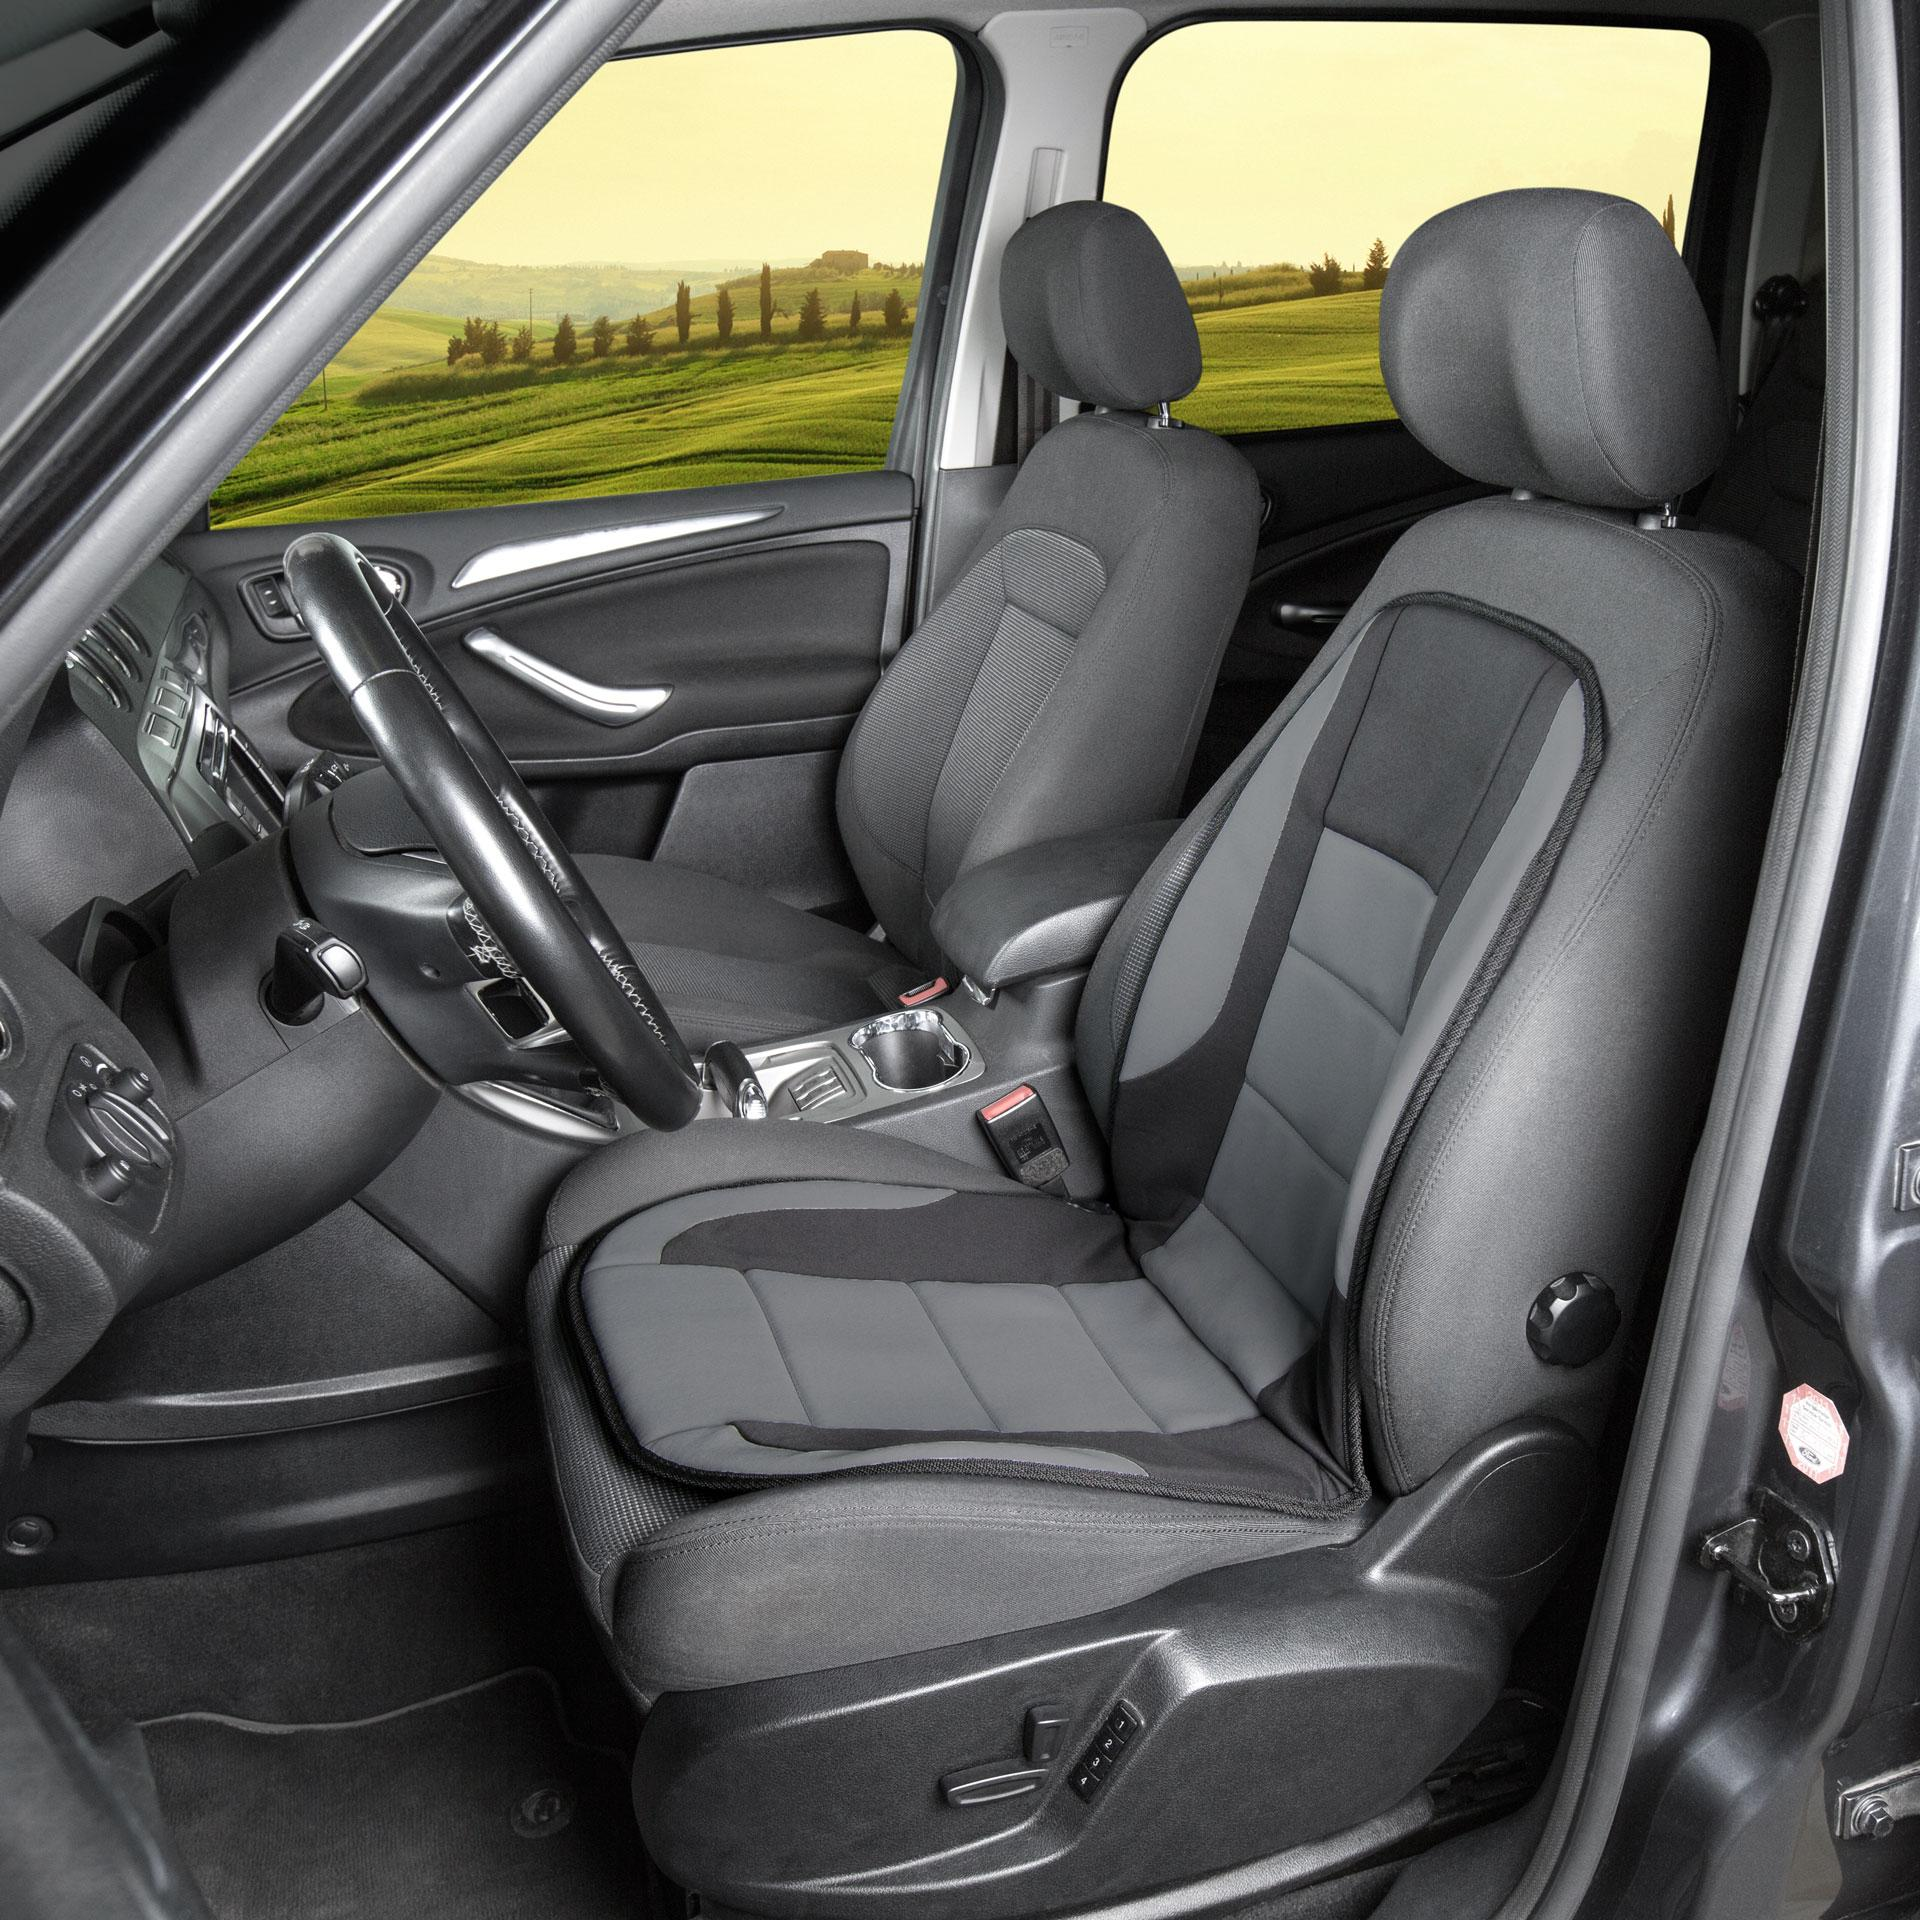 Heated Seat Cover WALSER 16792 rating